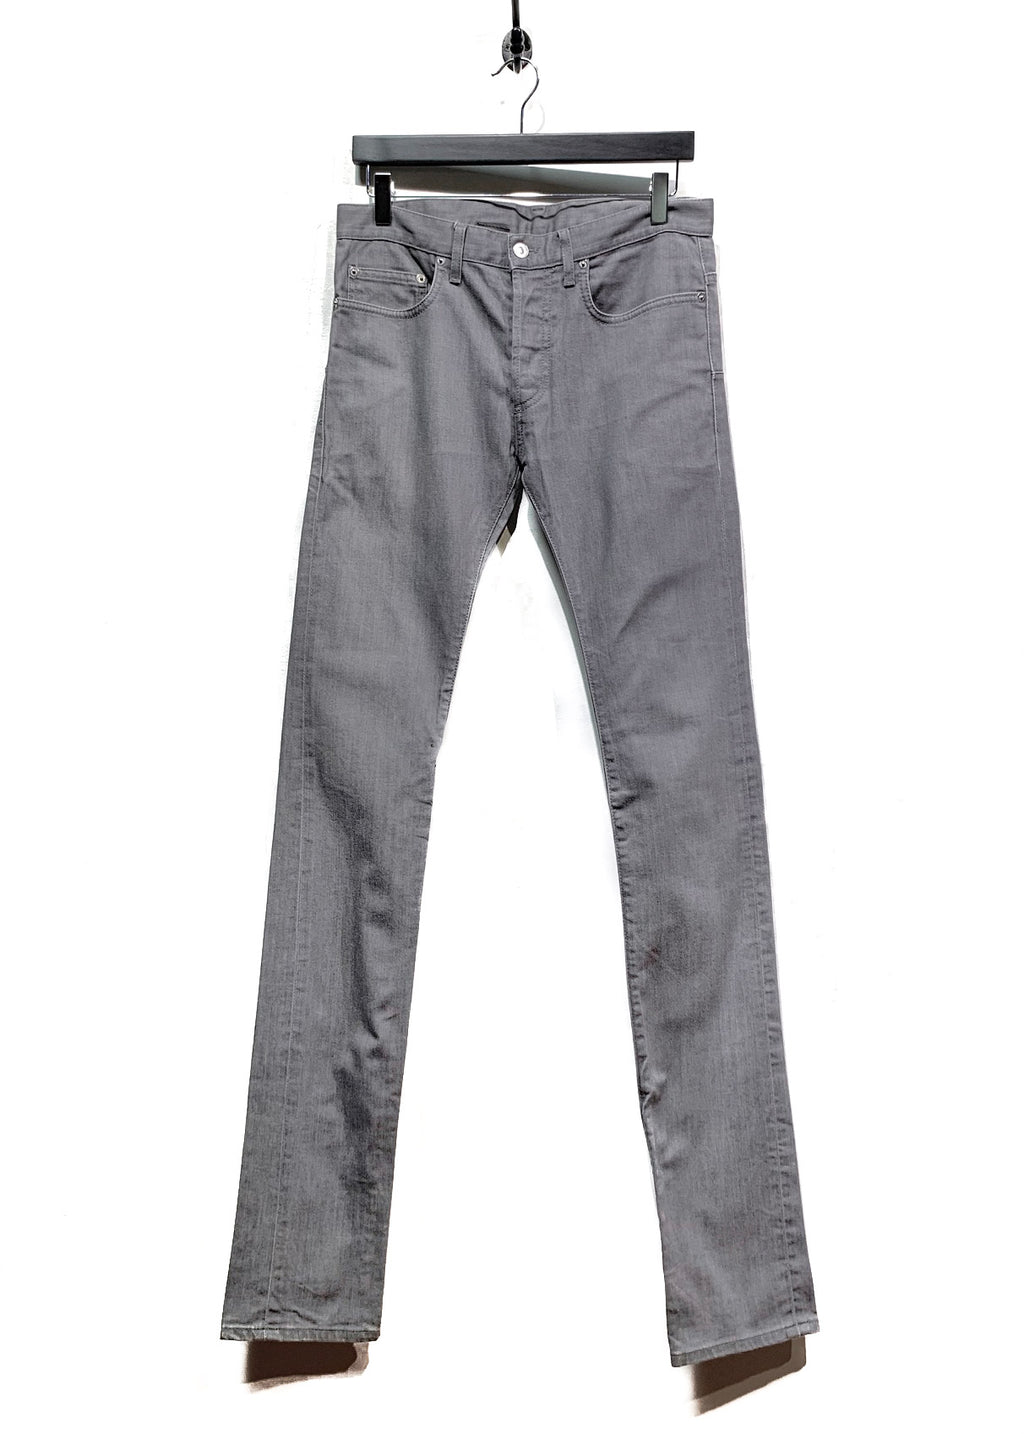 Dior Homme Grey Skinny Jeans